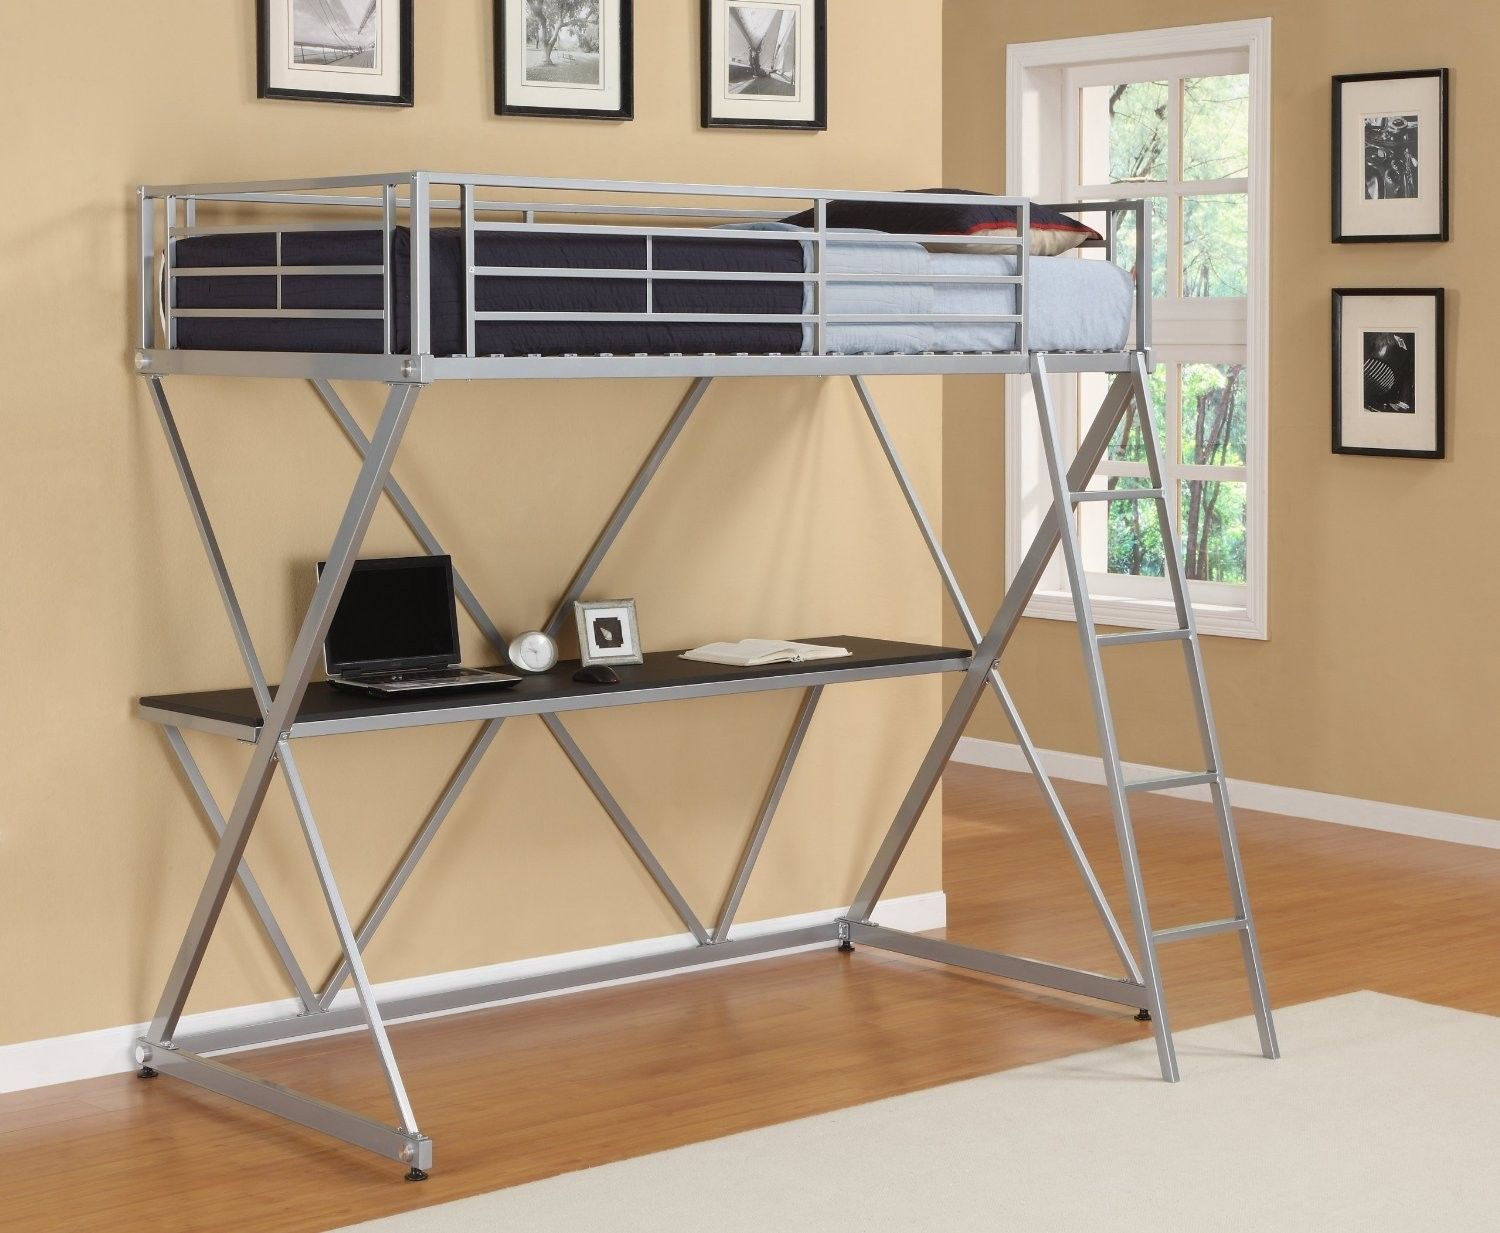 Bed Home Office Computer Workstation Desk Ladder Guard Rails - Beds